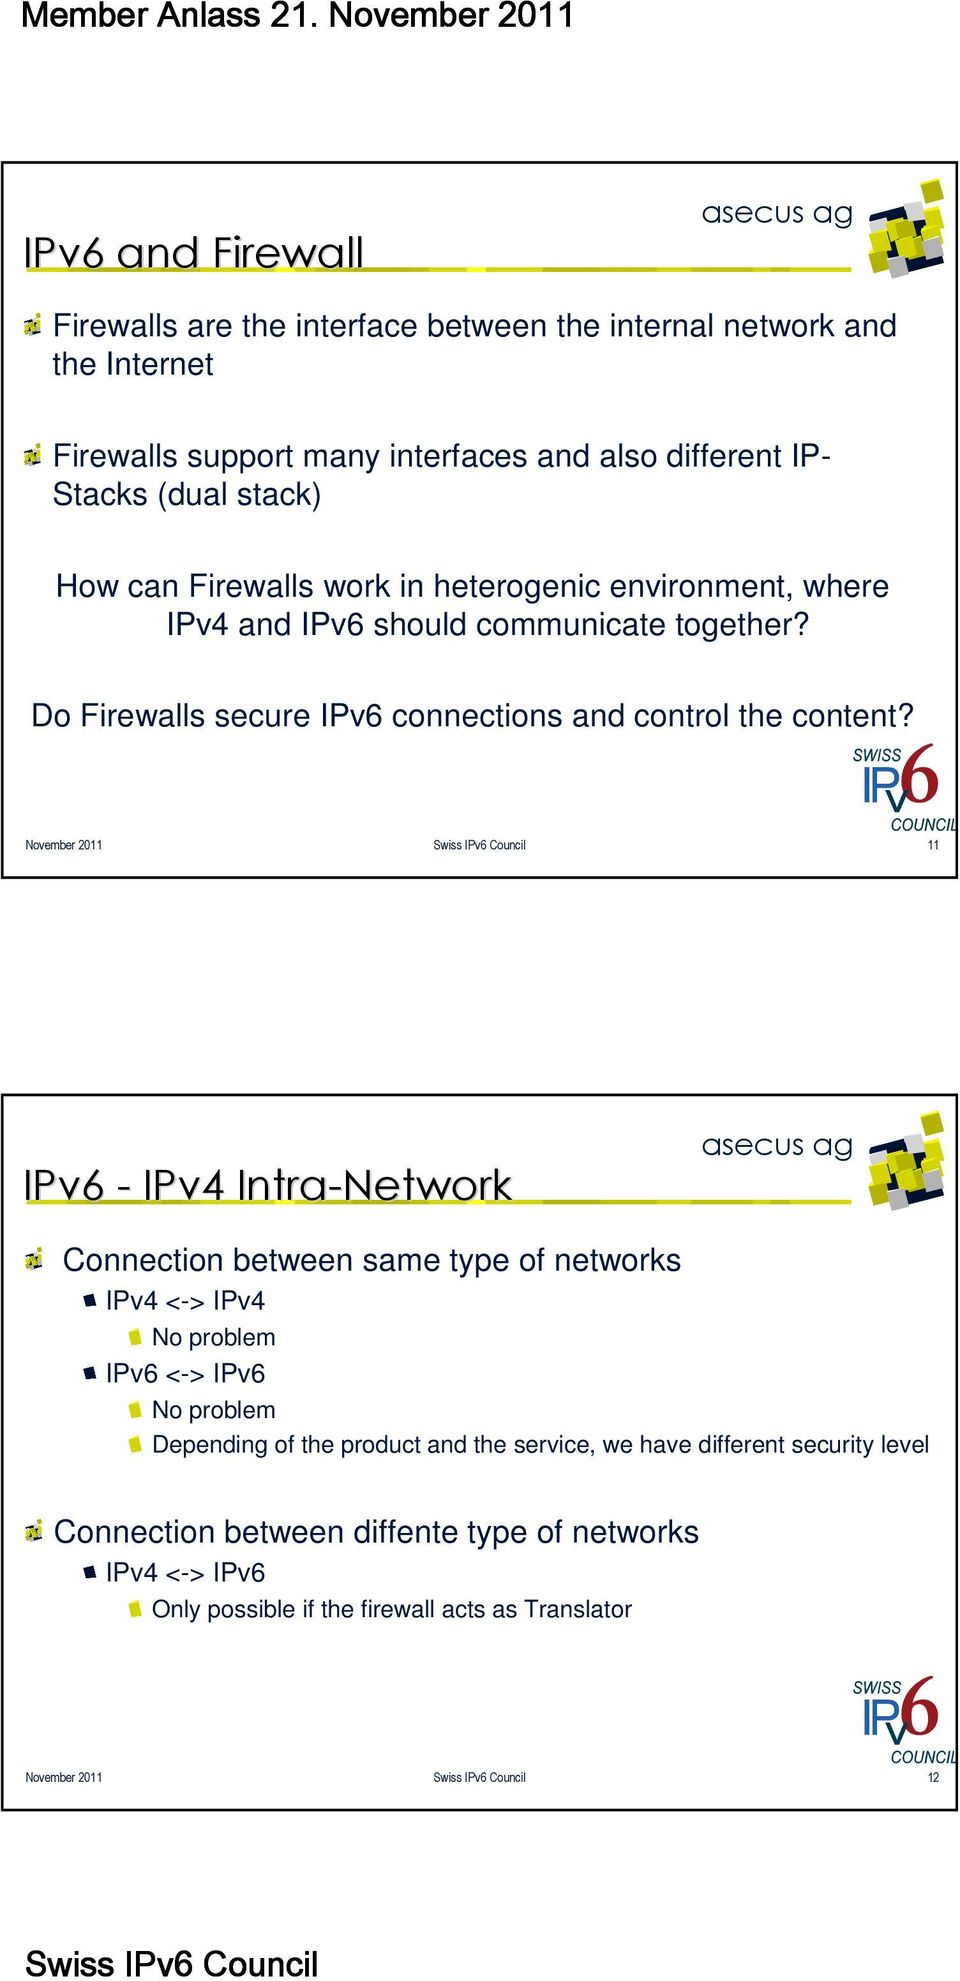 Do Firewalls secure IPv6 connections and control the content?